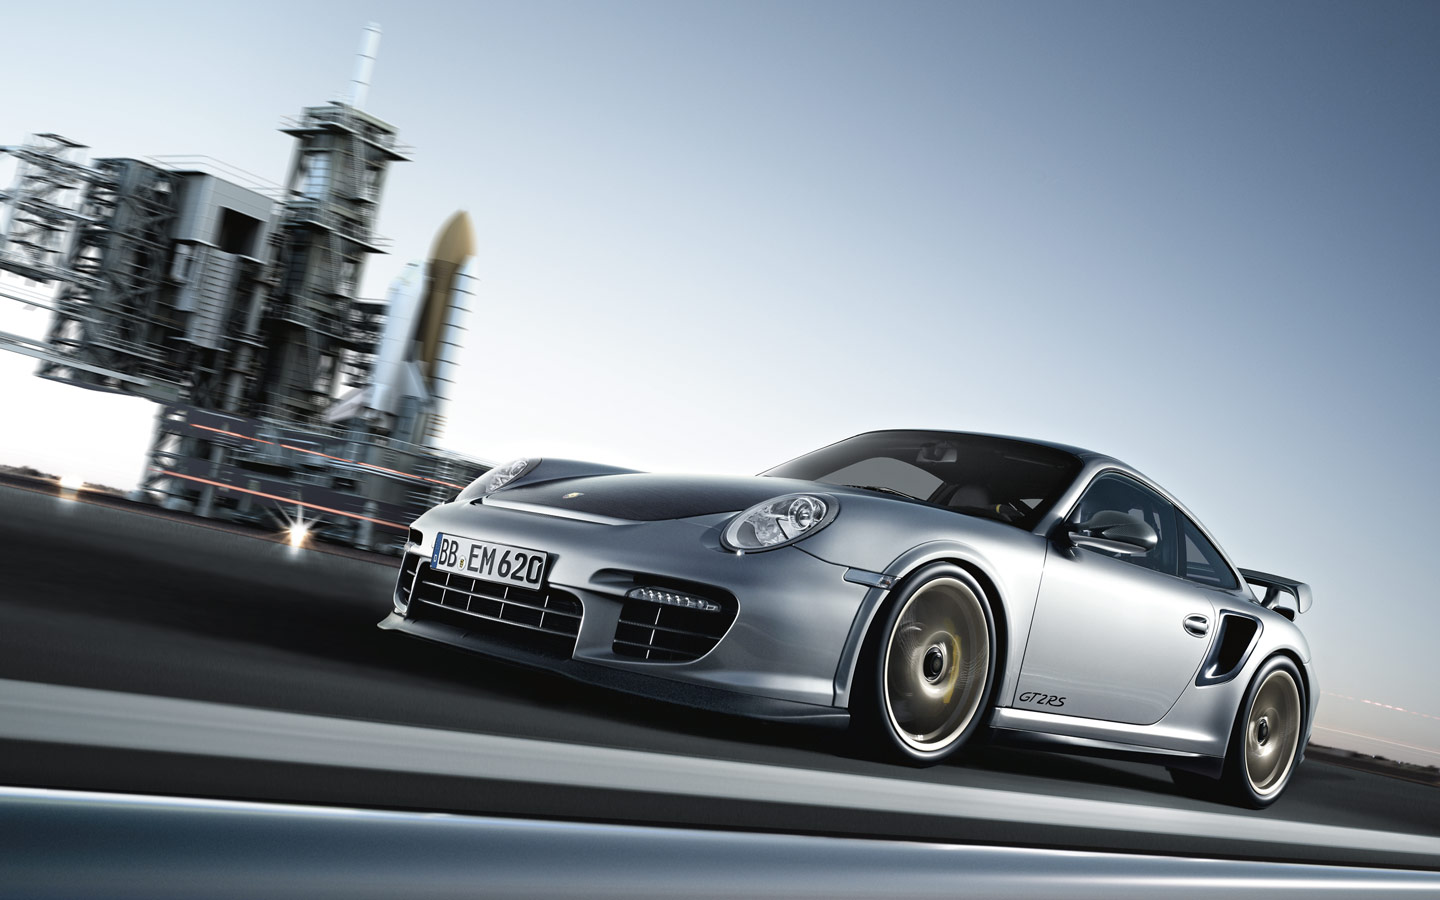 porsche 911 gt2 rs official details released w images video. Black Bedroom Furniture Sets. Home Design Ideas